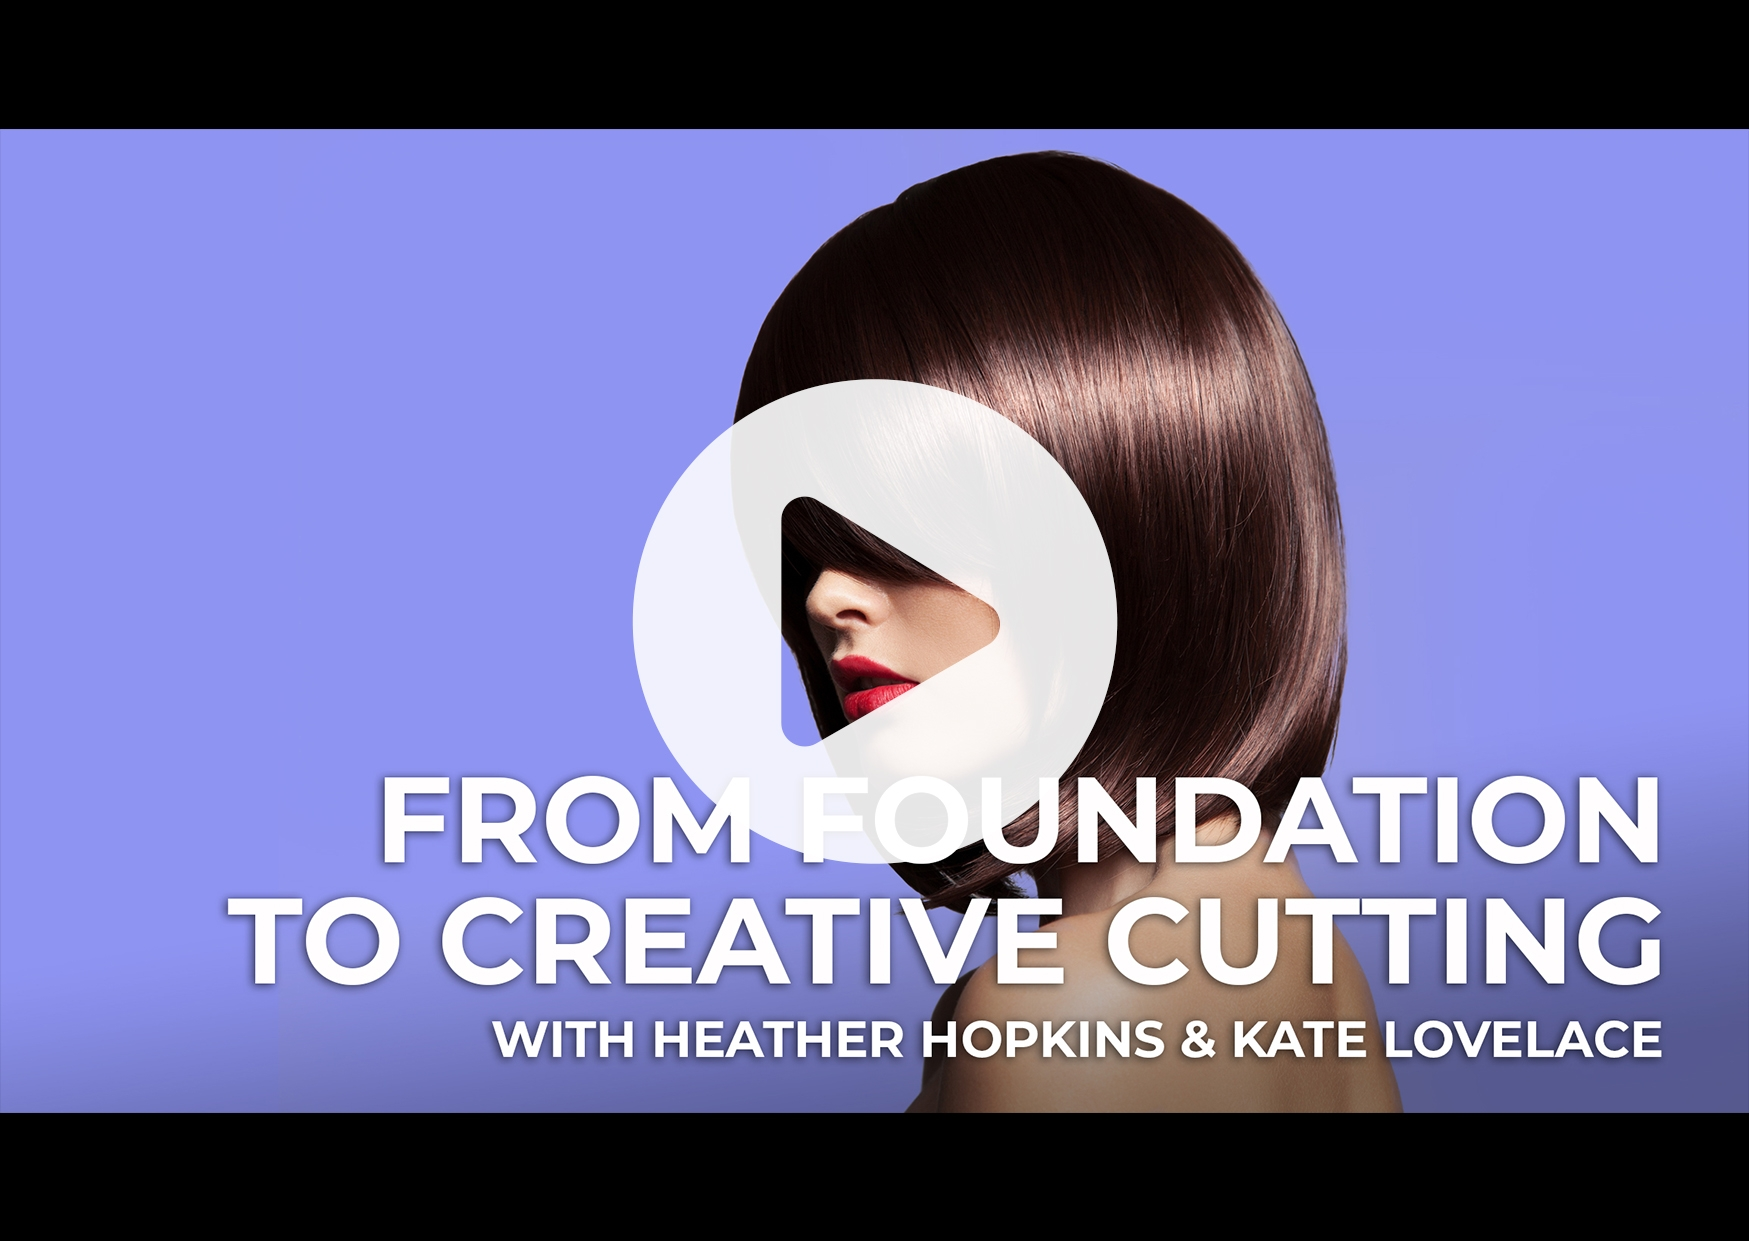 From Foundation to Creative Cutting Session 4